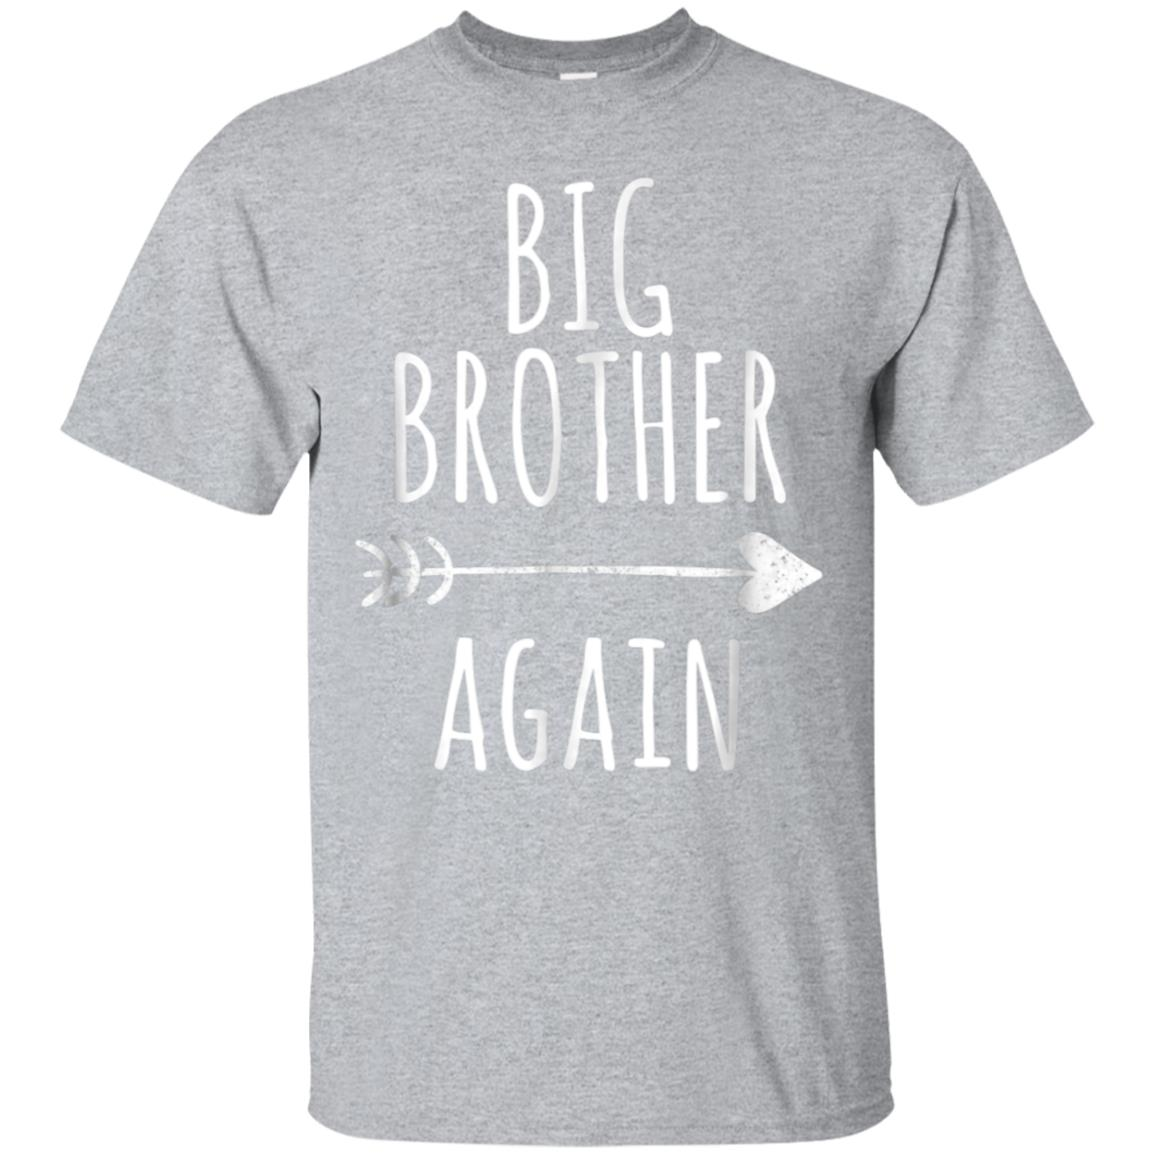 Big Brother Again Shirt for Boys with Arrow and Heart 99promocode